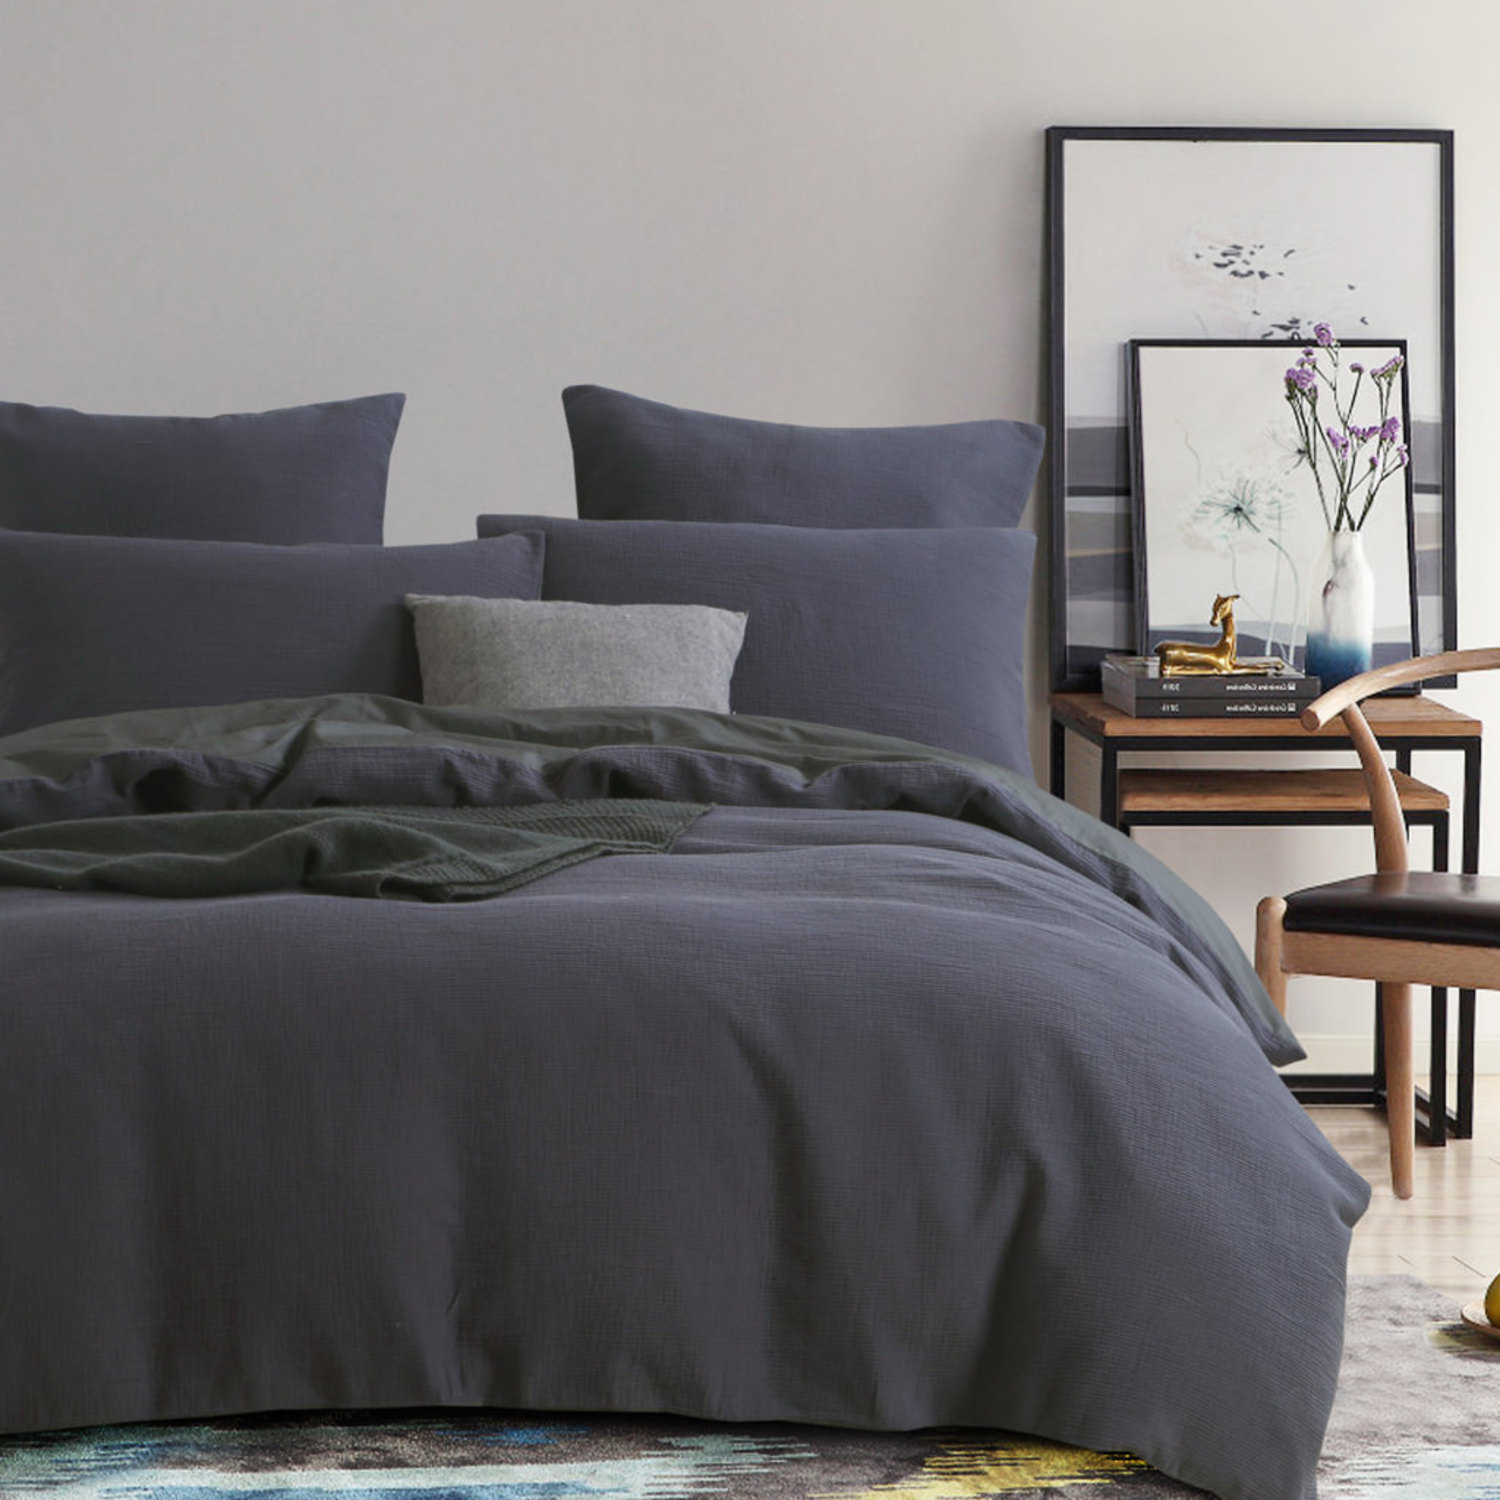 Chaucer Navy by Daniadown Bedding